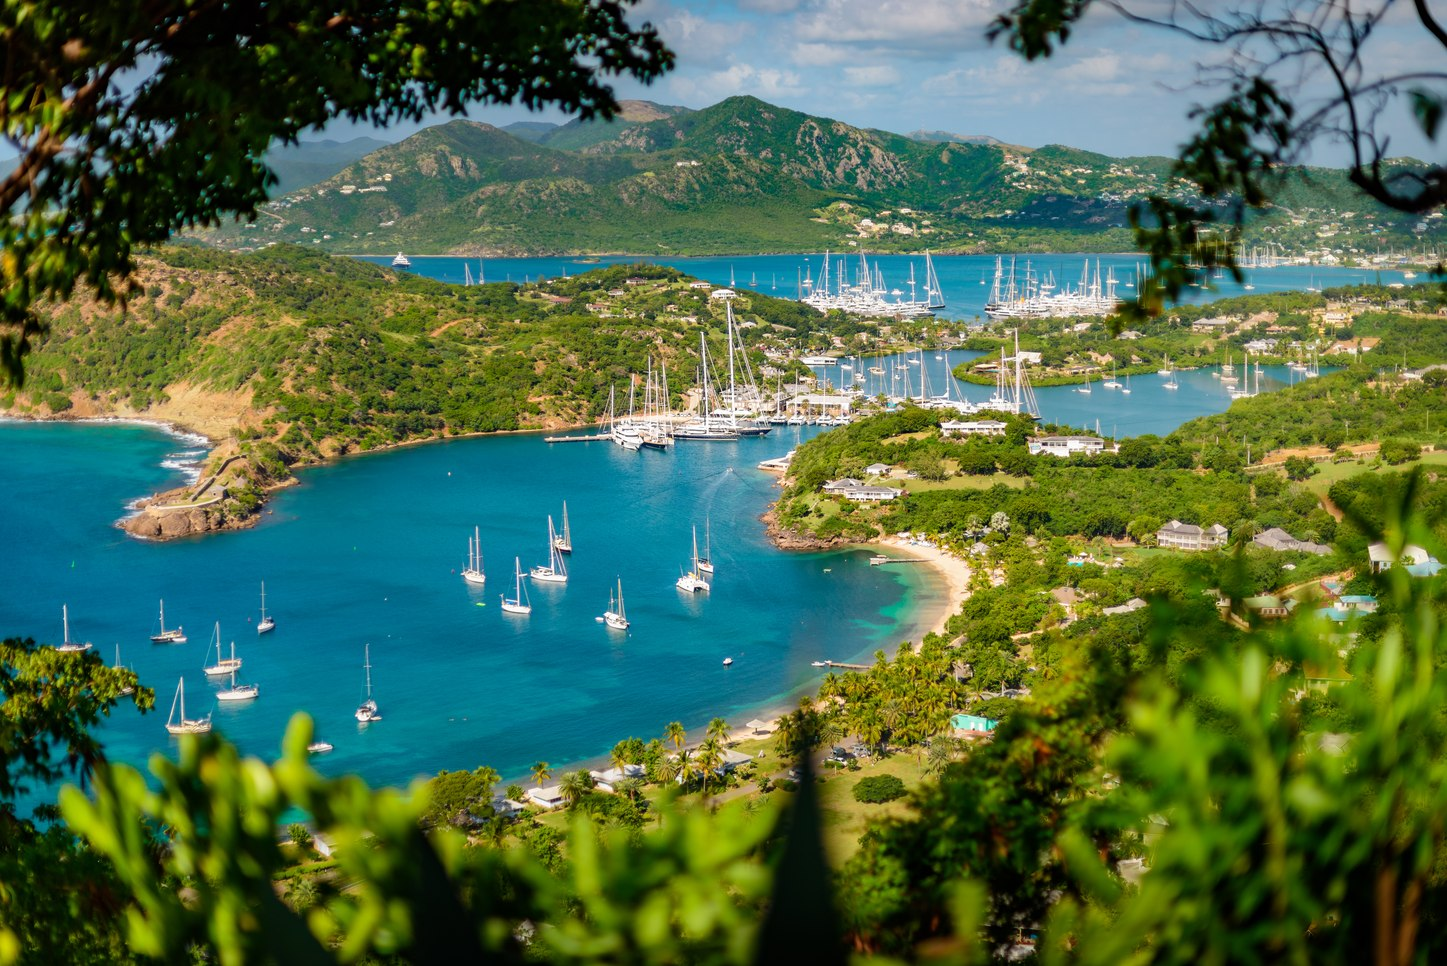 English harbour panorama seen from shirley heights in Antigua during Antigua Charter Yacht Show